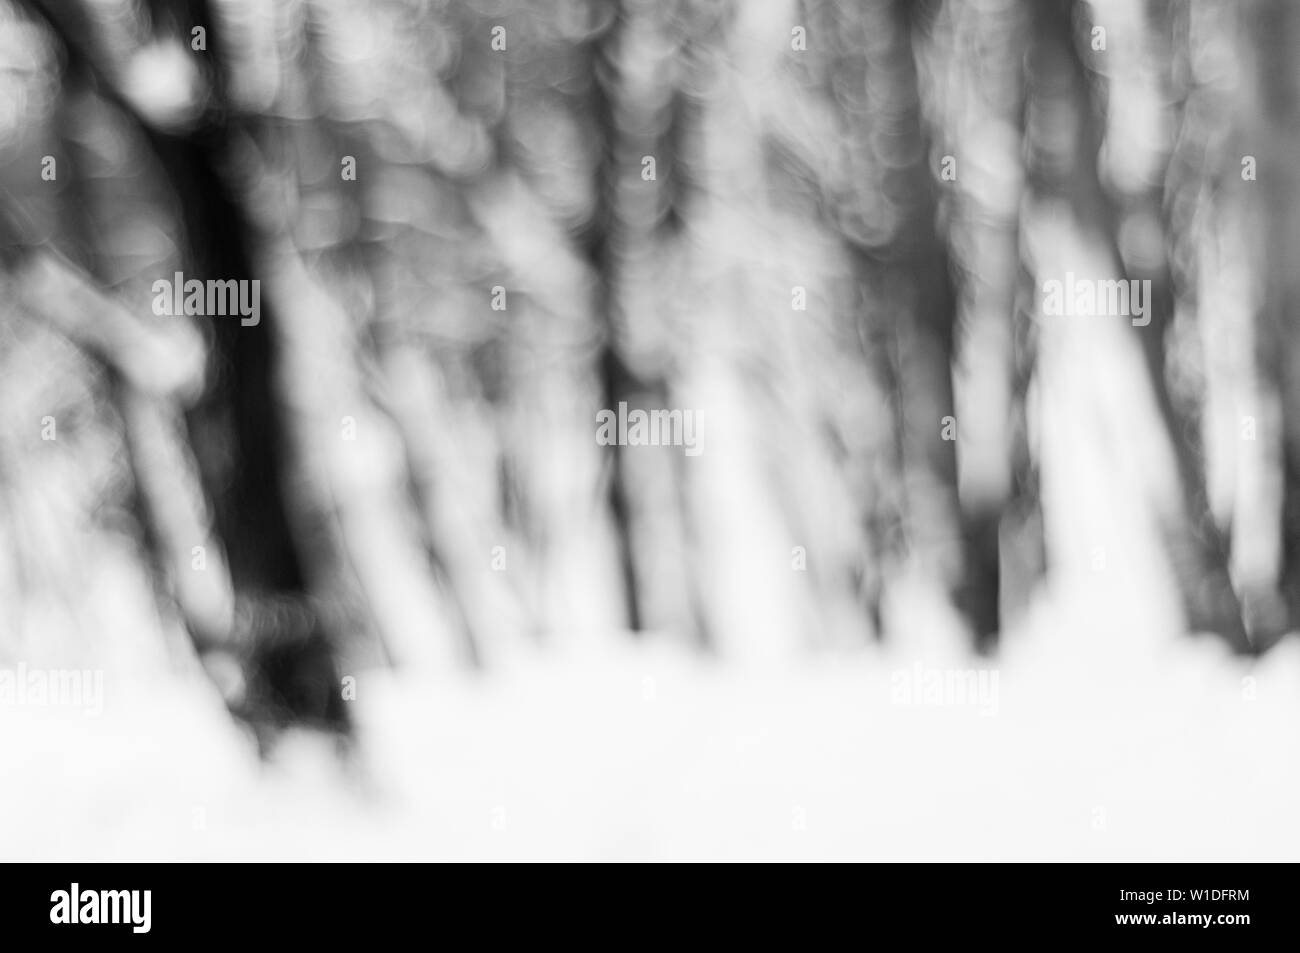 Blurred background of winter forest - Stock Image